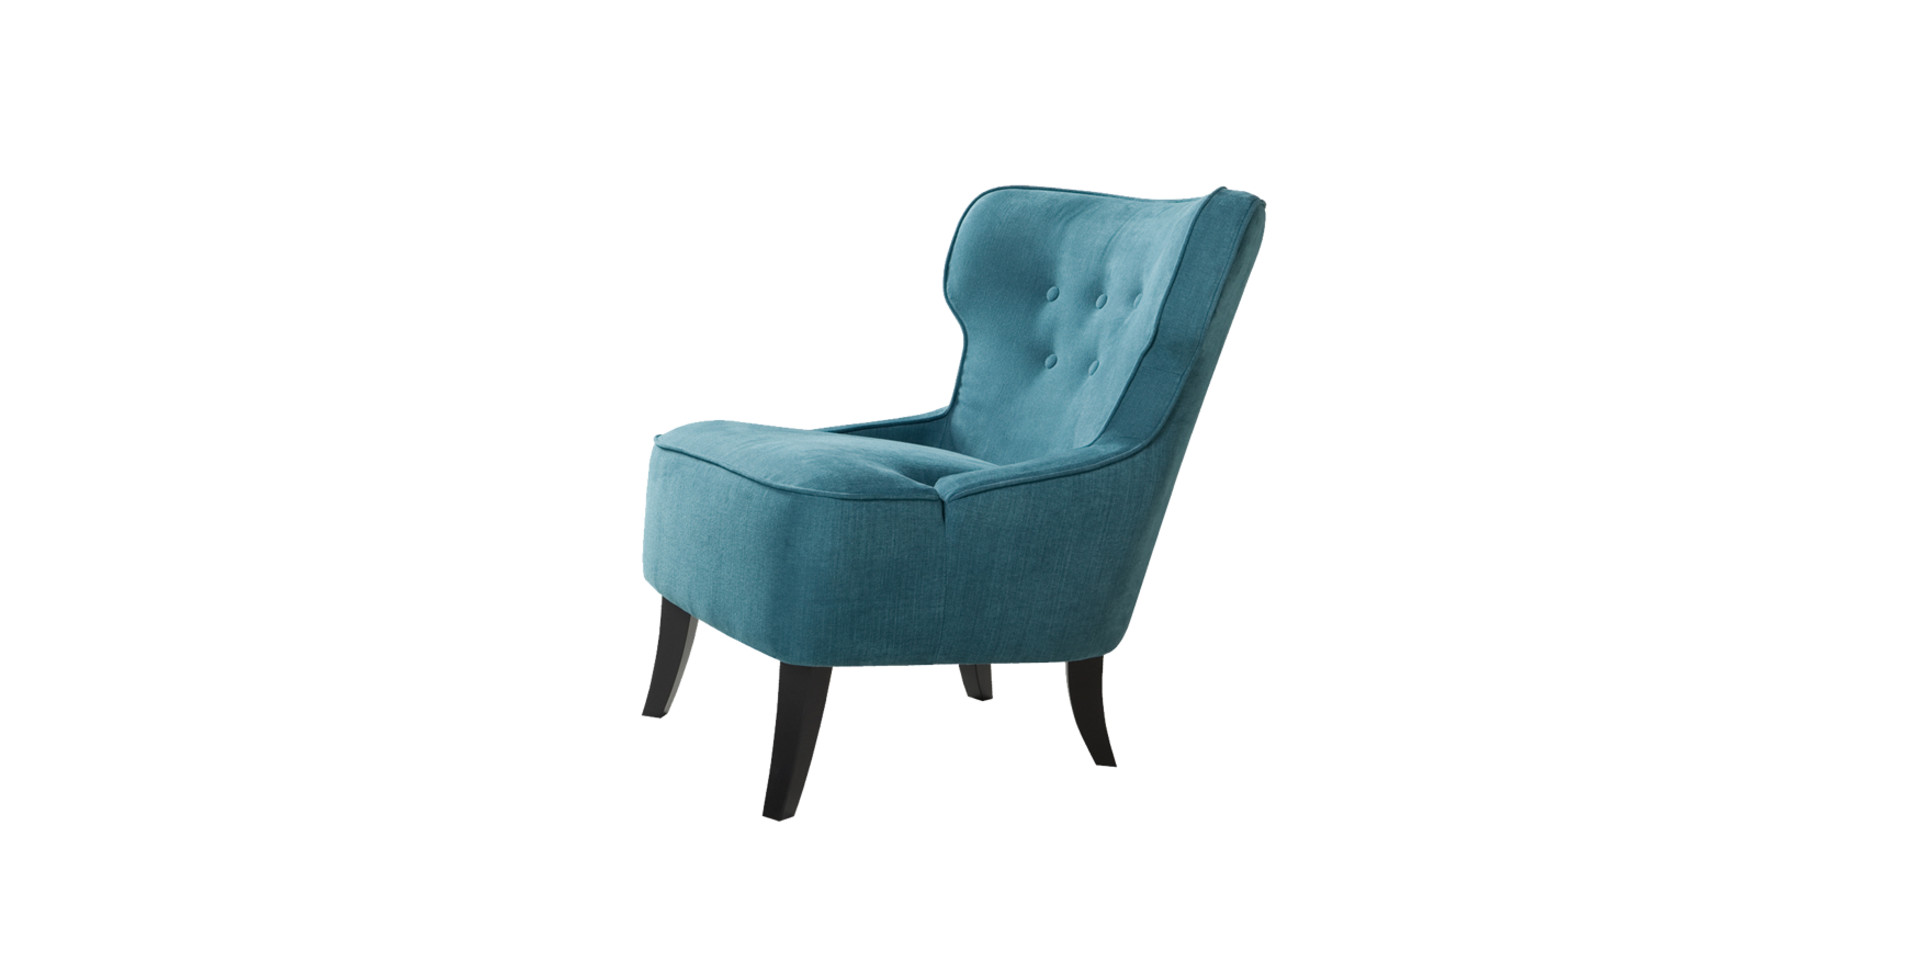 sits-lisa-fauteuil-armchair5_buttons_caleido1551_turquoise_4